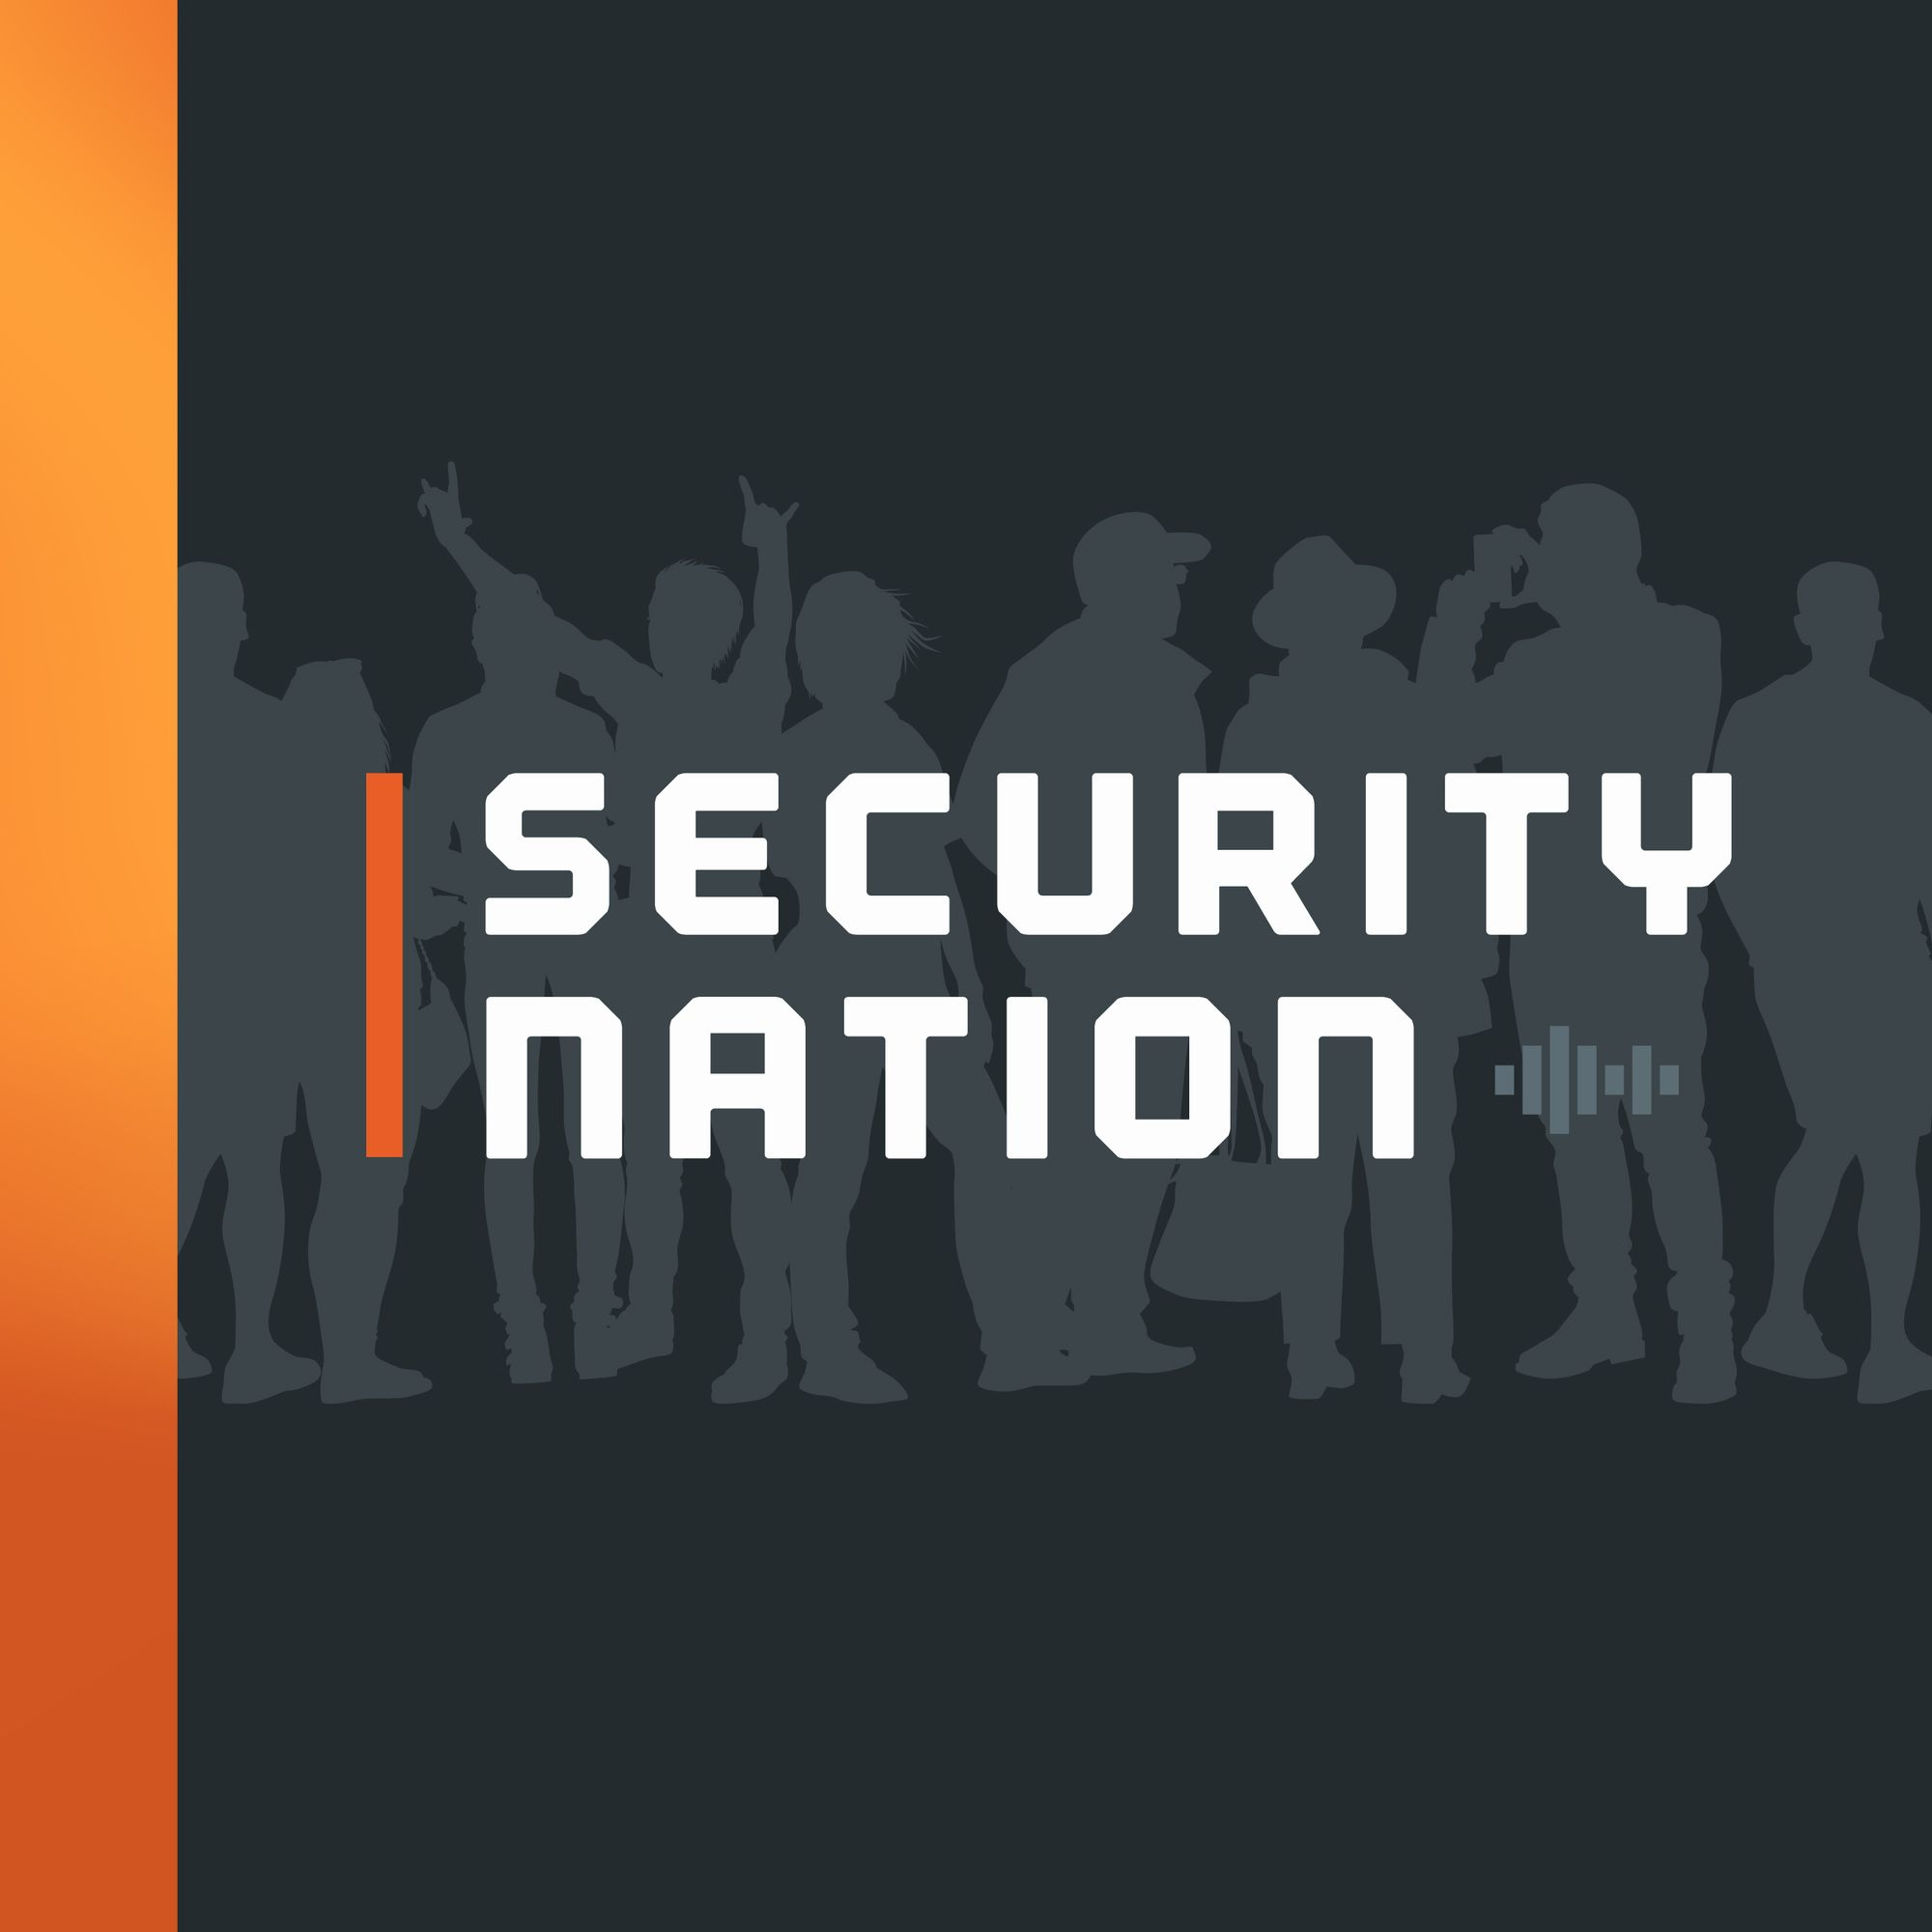 [Security Nation] Jonathan Cran on demystifying startup funding for security companies